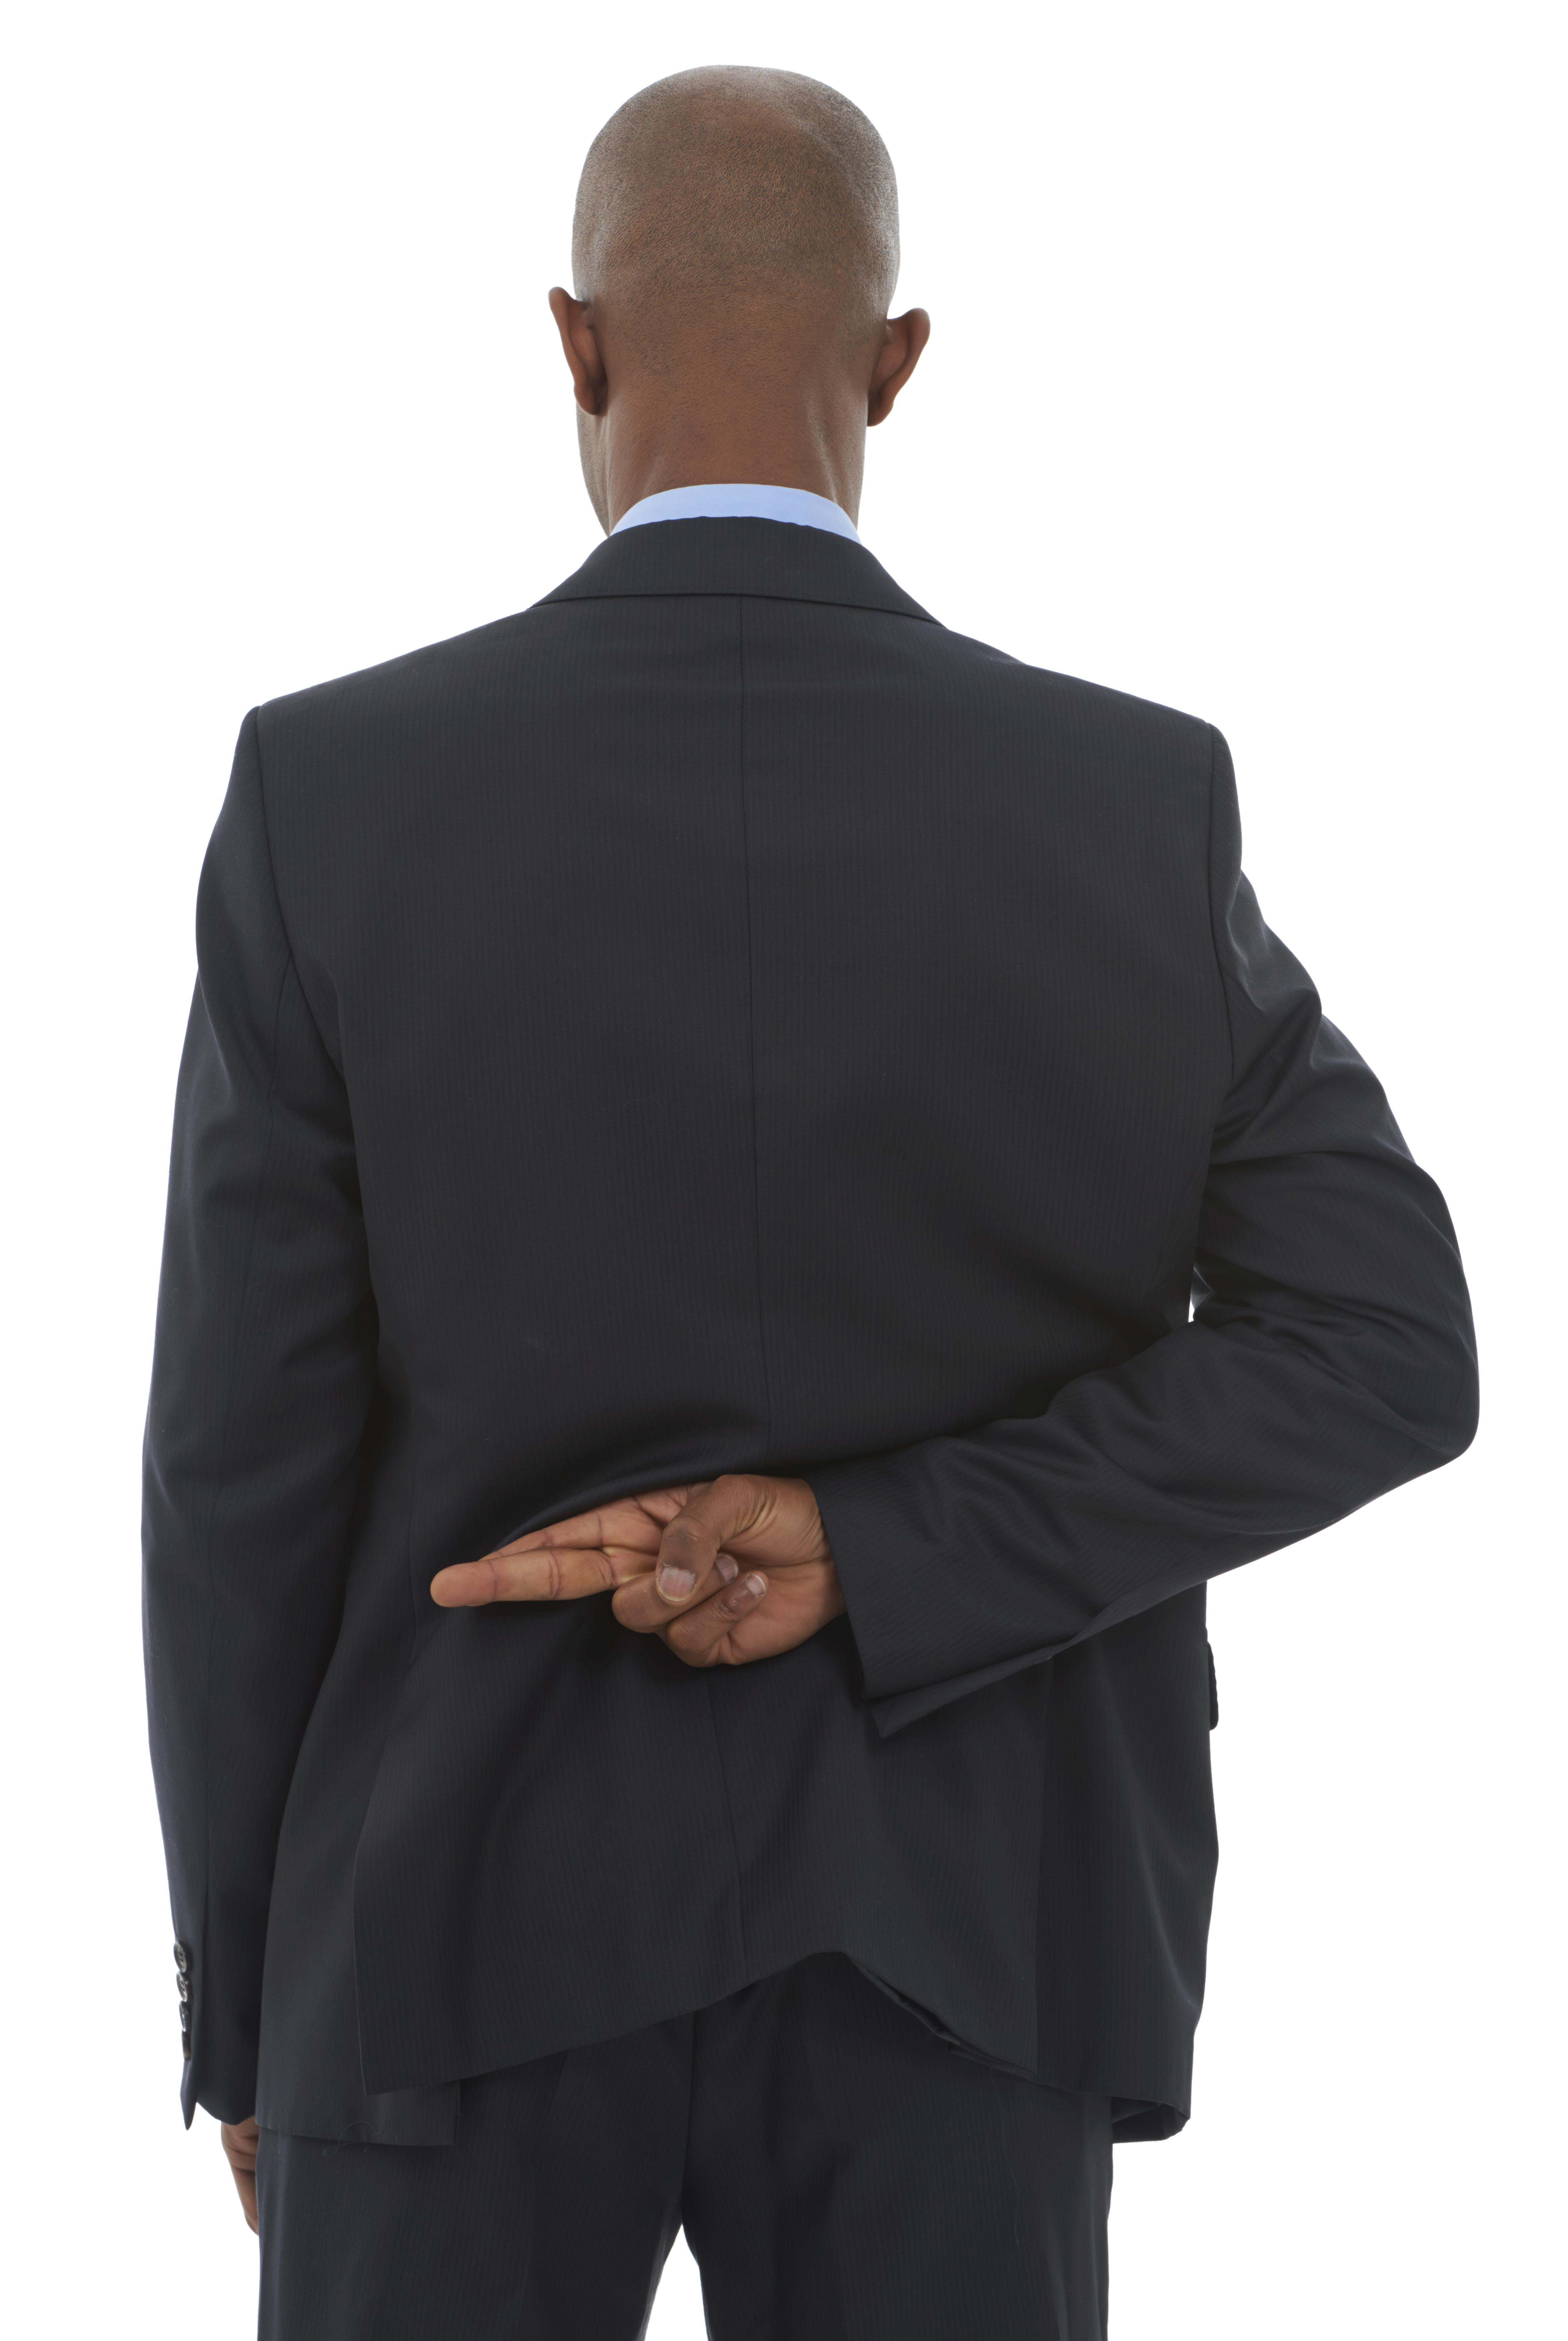 An African-American businessman with his fingers crossed behind his back